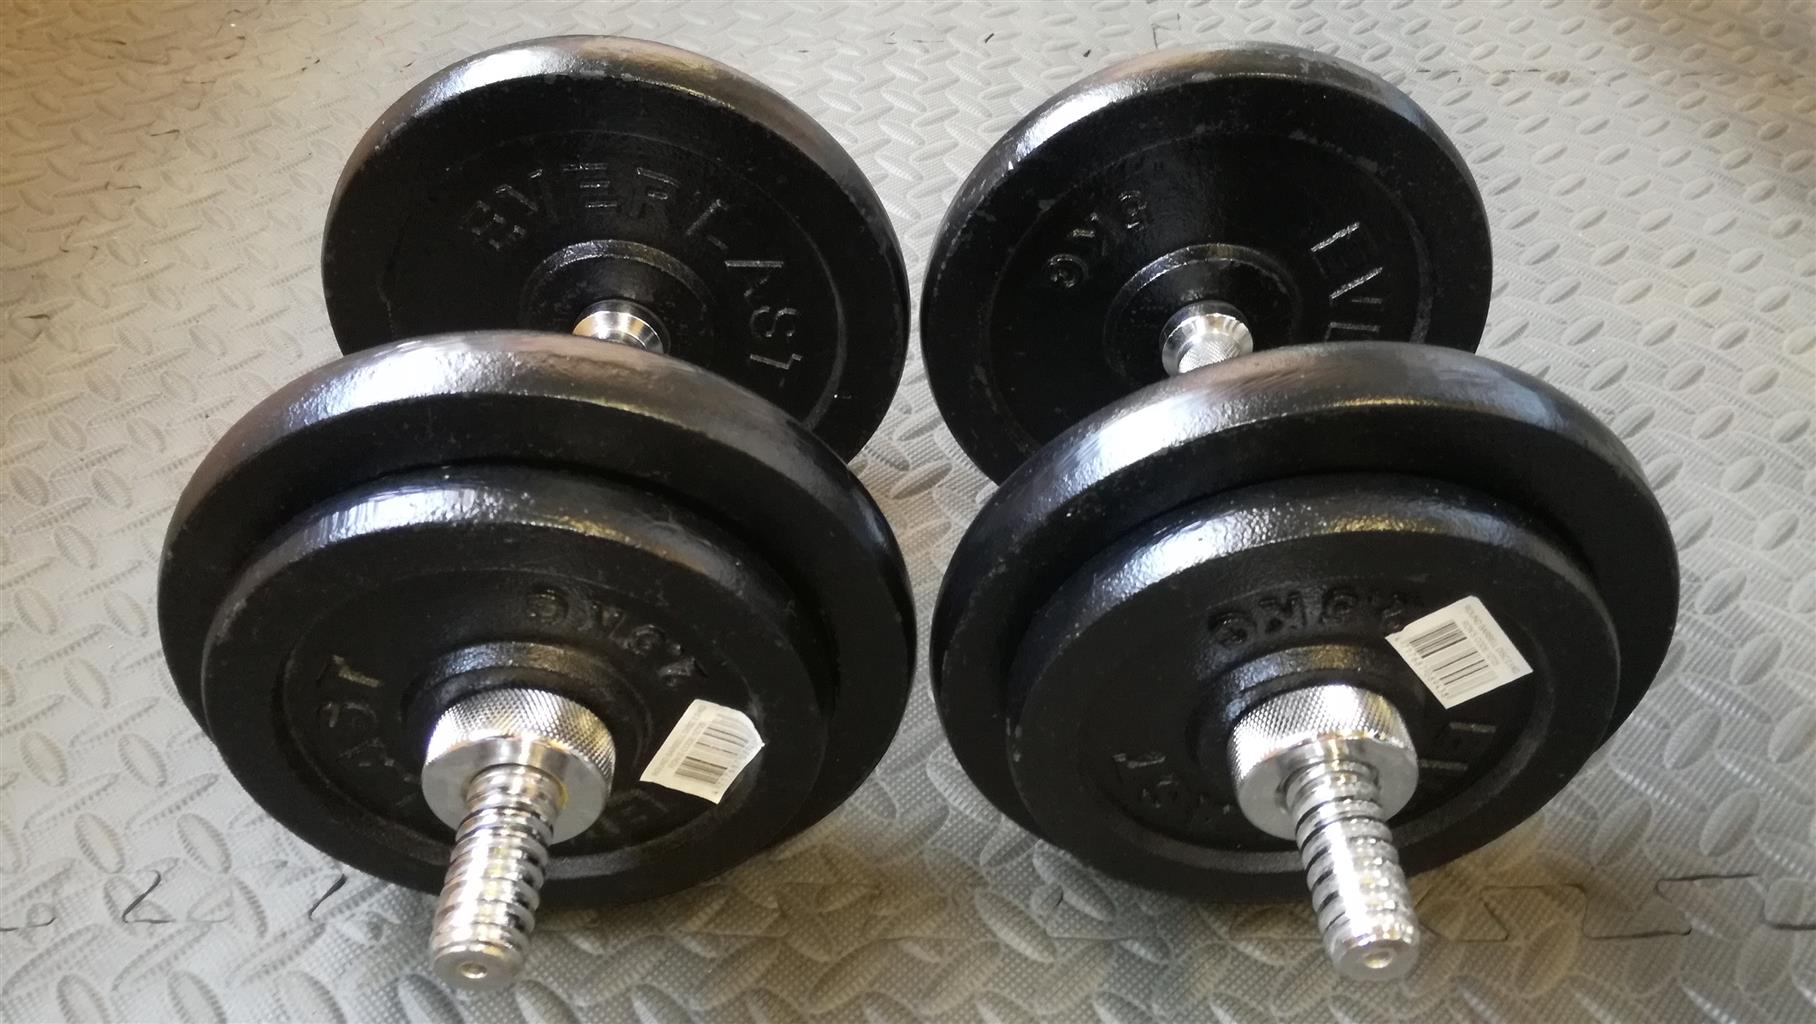 Everlast Dumbell Set 30kg